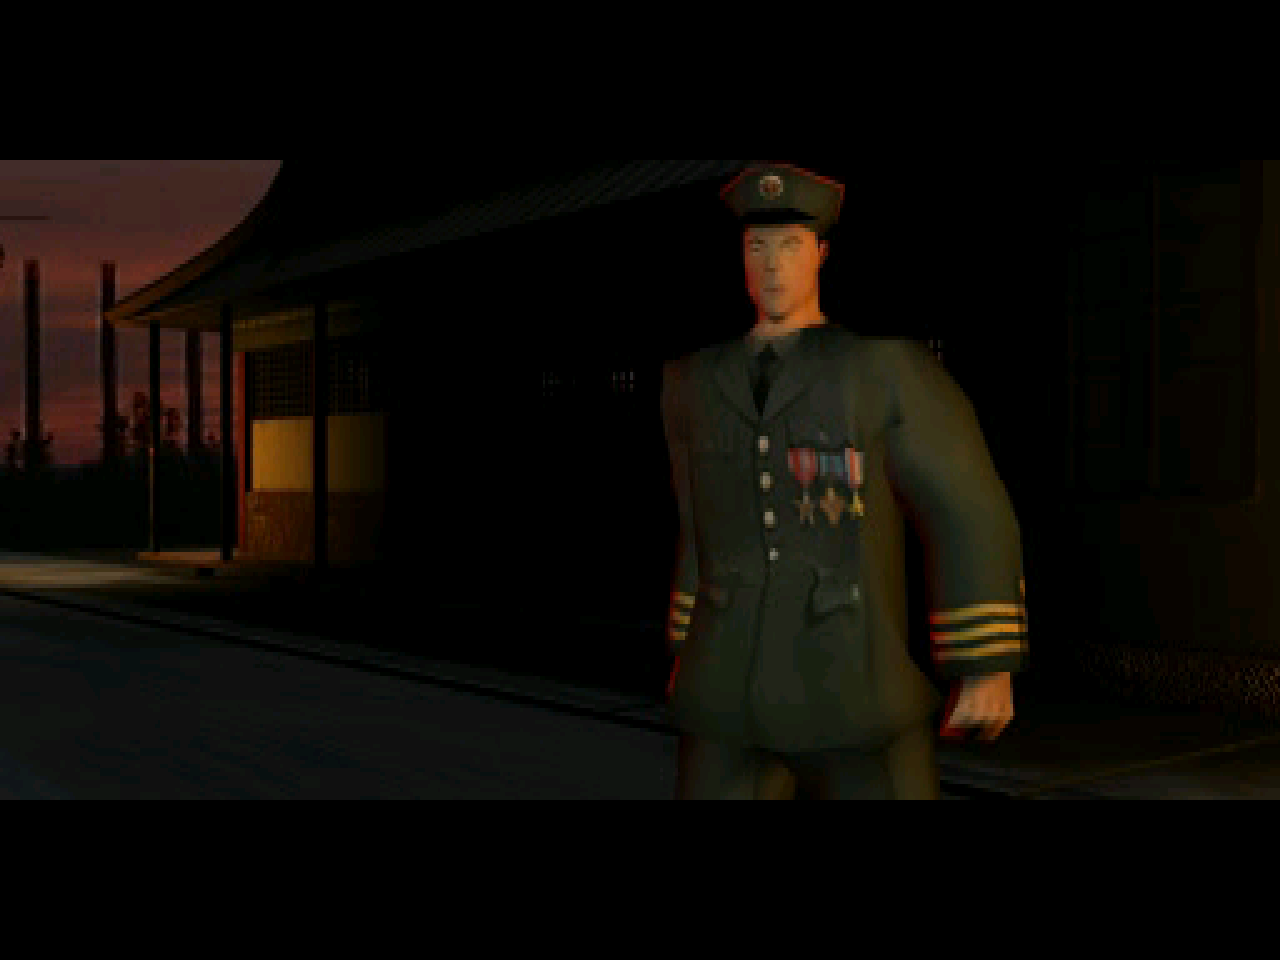 https://s3.eu-west-3.amazonaws.com/games.anthony-dessalles.com/Syphon Filter 2 PS1 2020 - Screenshots/Syphon Filter 2 Disc 1-201126-173539.png